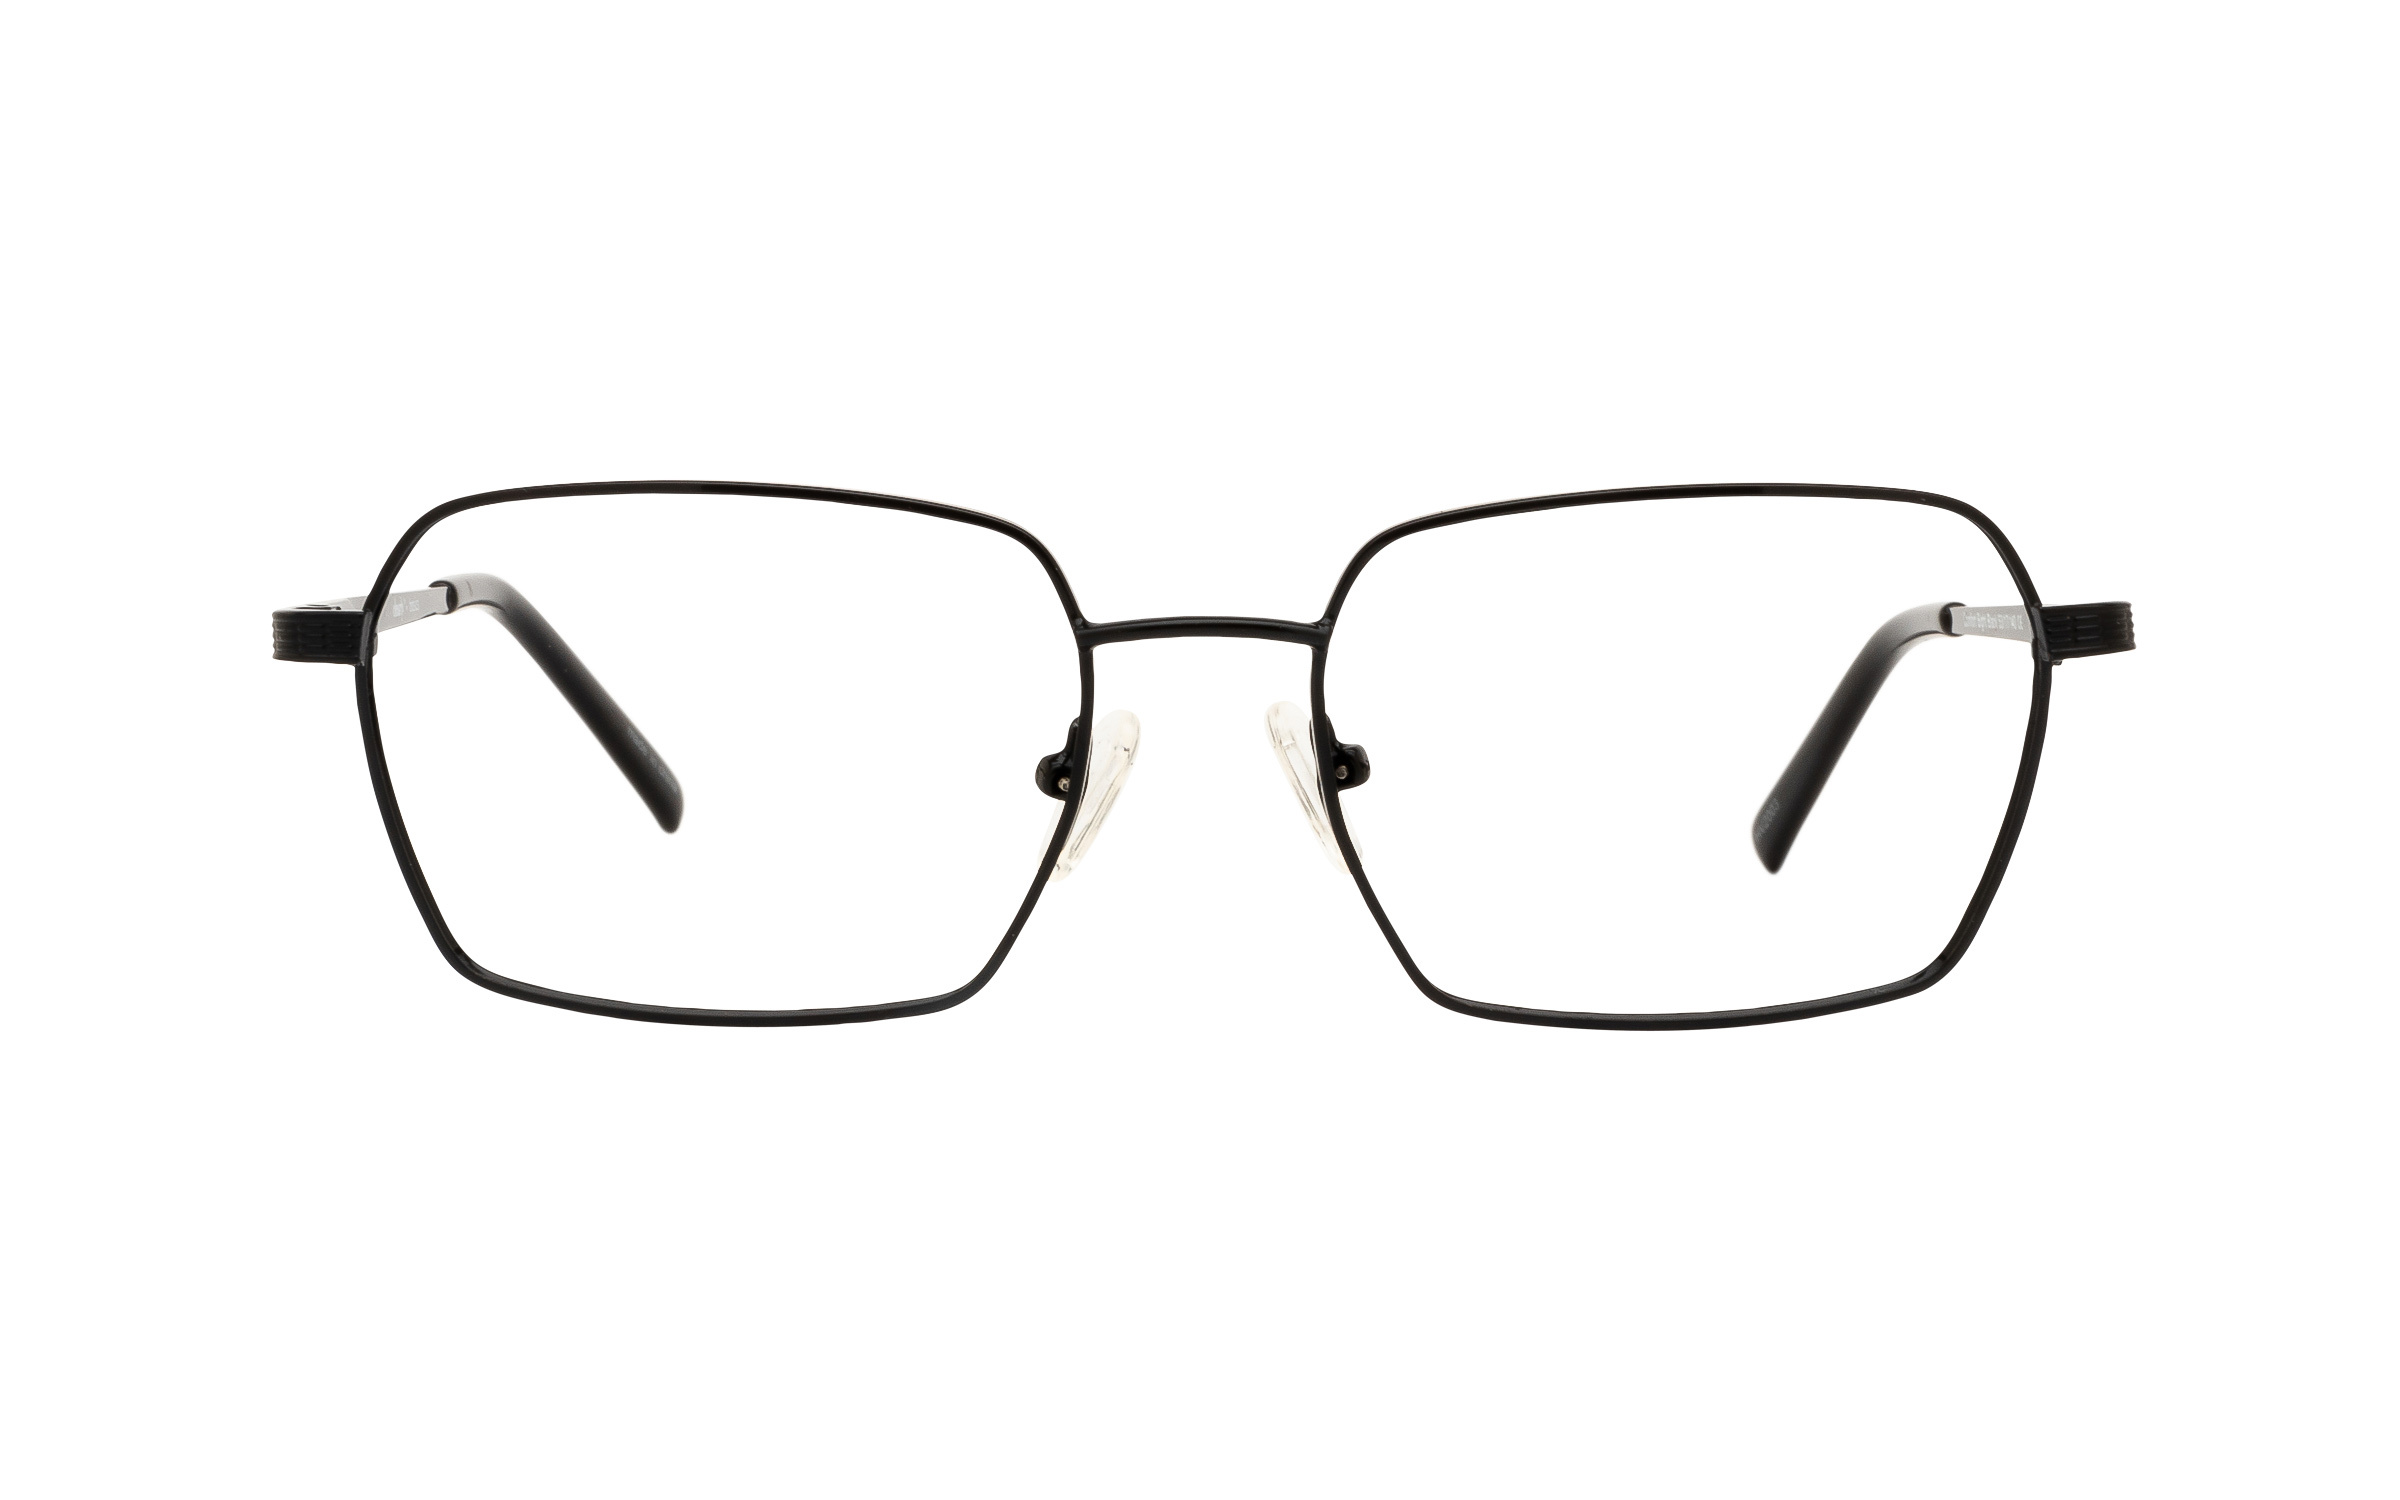 Clearly Basics Comfort Bight CLS075 C01 (53) Eyeglasses and Frame in Black - Online